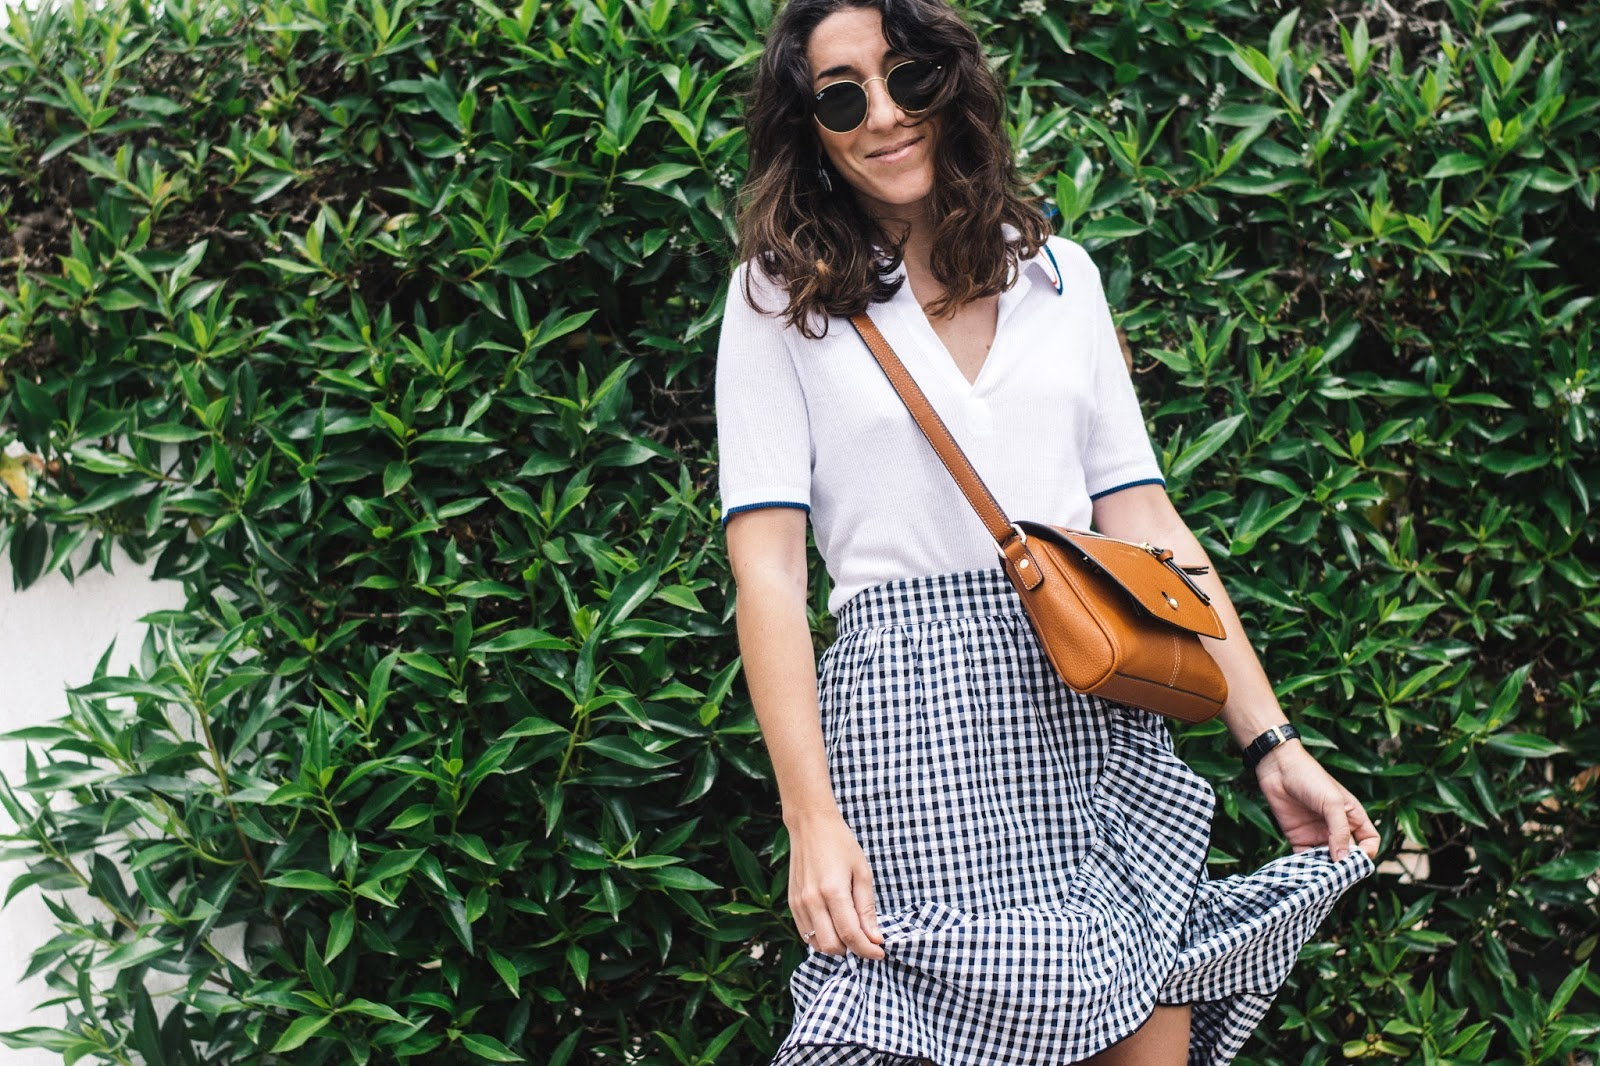 gingham_print_asos_skirt_pepe_moll_bag_hm_slip_on_hm_tennis_top-11